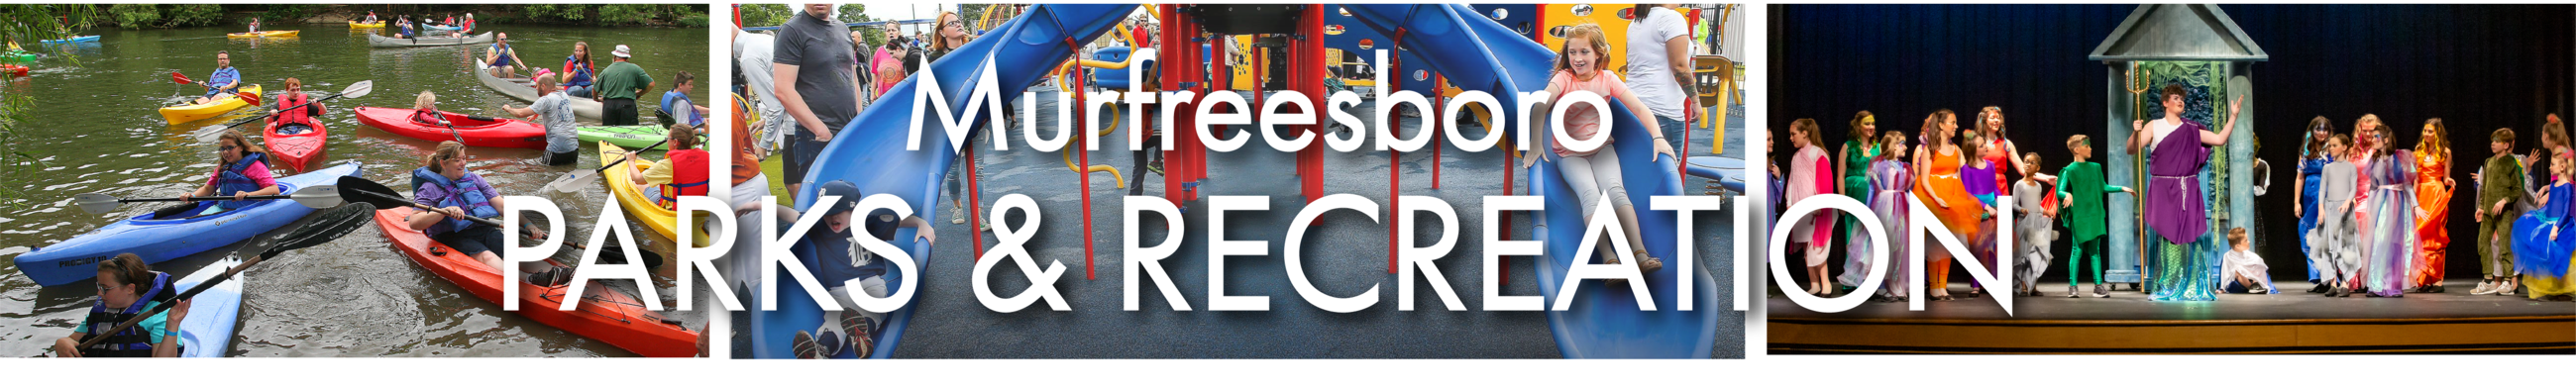 Murfreesboro Parks and Recreation